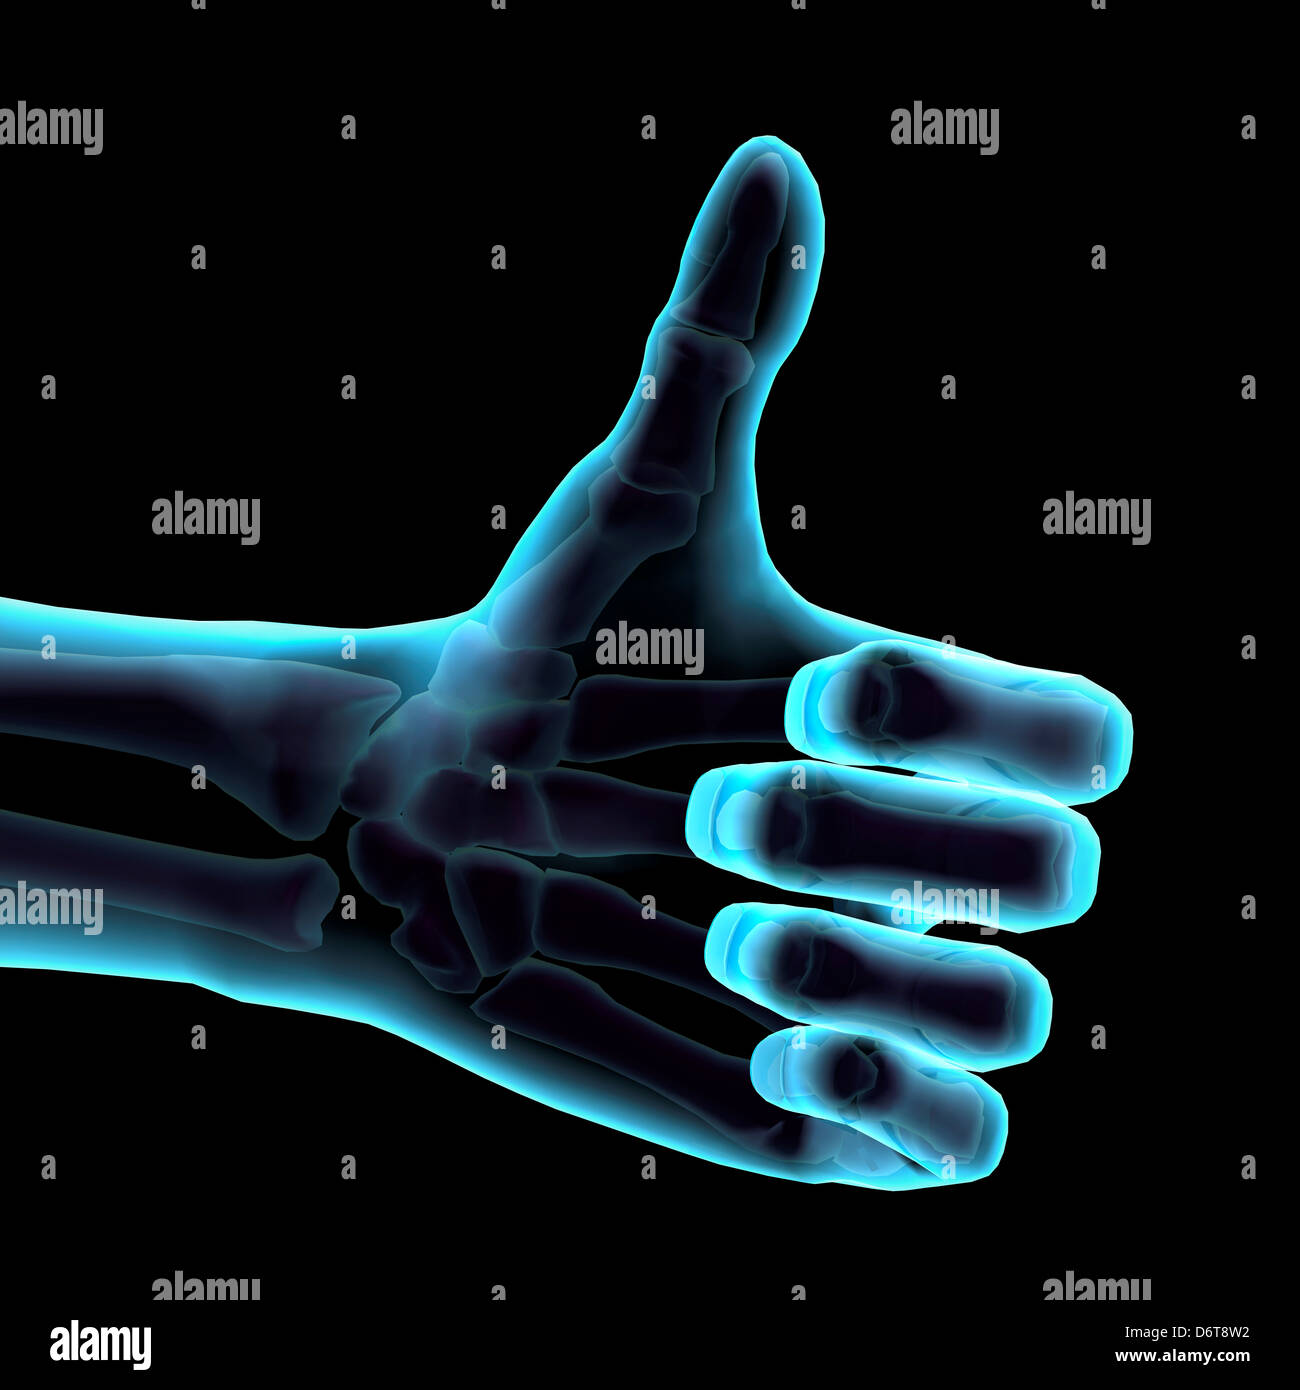 3D Computer Illustration of a blue hand giving the thumbs up sign. Black background - Stock Image